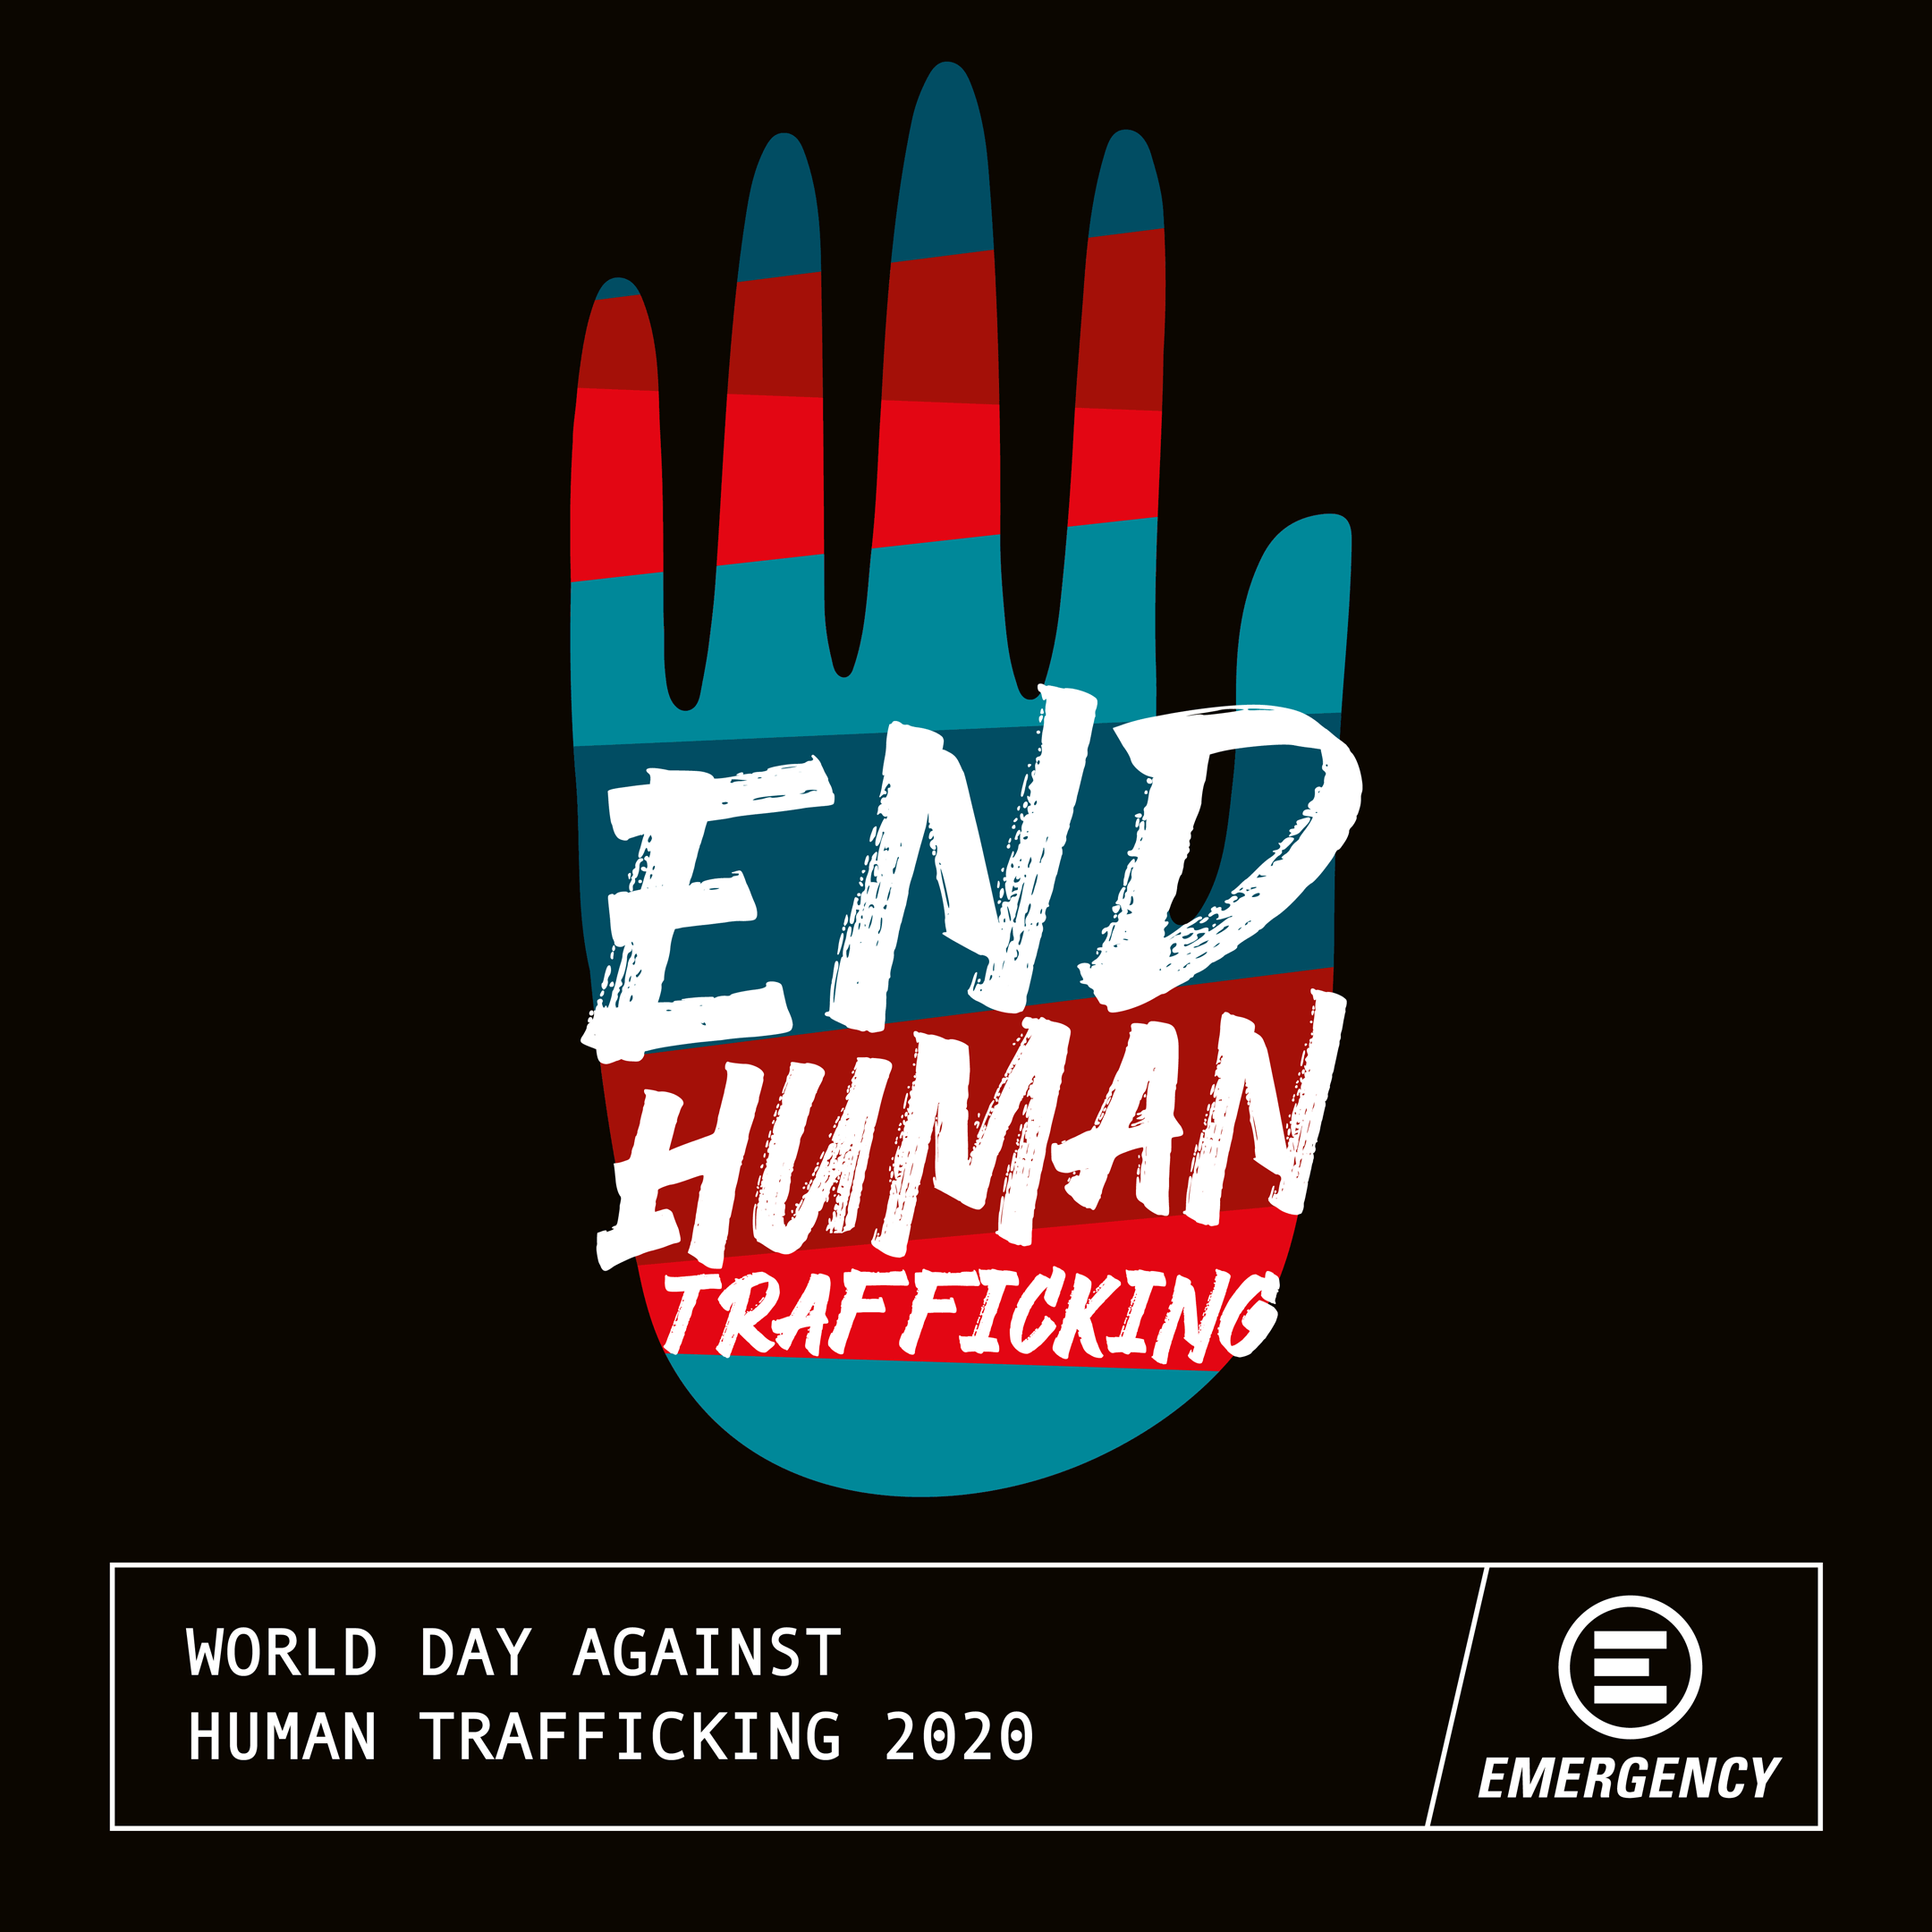 World Day Against Human Trafficking 2020